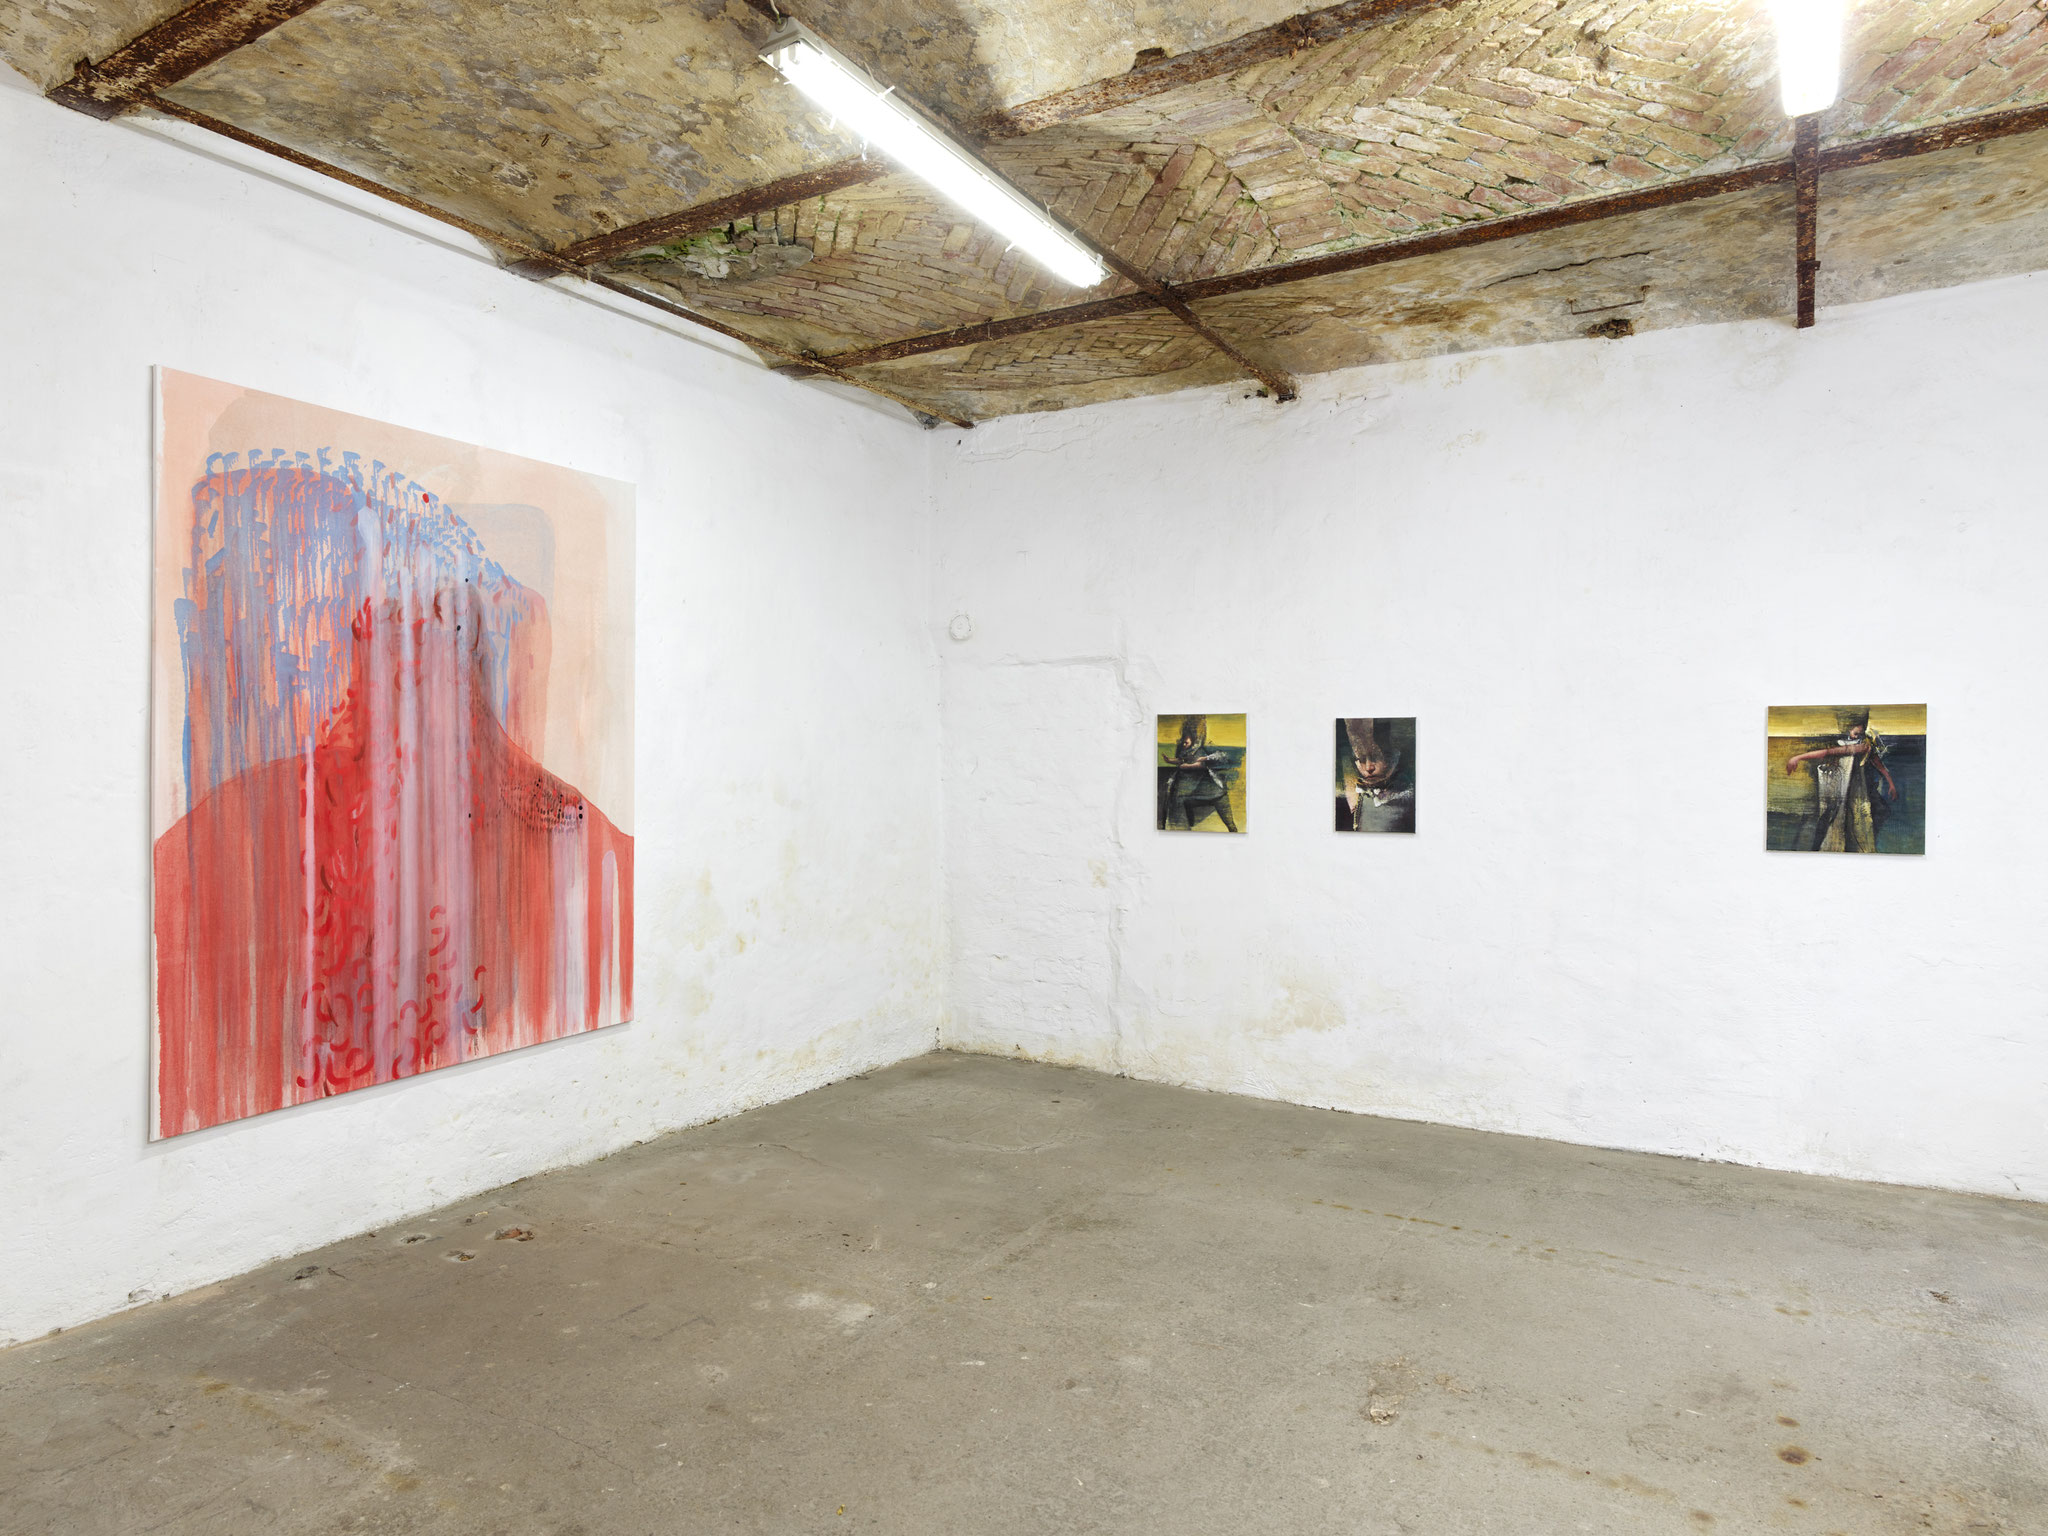 Exhibition 'A Matter of Touch' at Torstrasse Berlin. Curated by Jurriaan Benschop / Rubica von Streng (painting left) MUSING I Nikos Aslanidis (paintings right) / Photo: Eric Tschernow